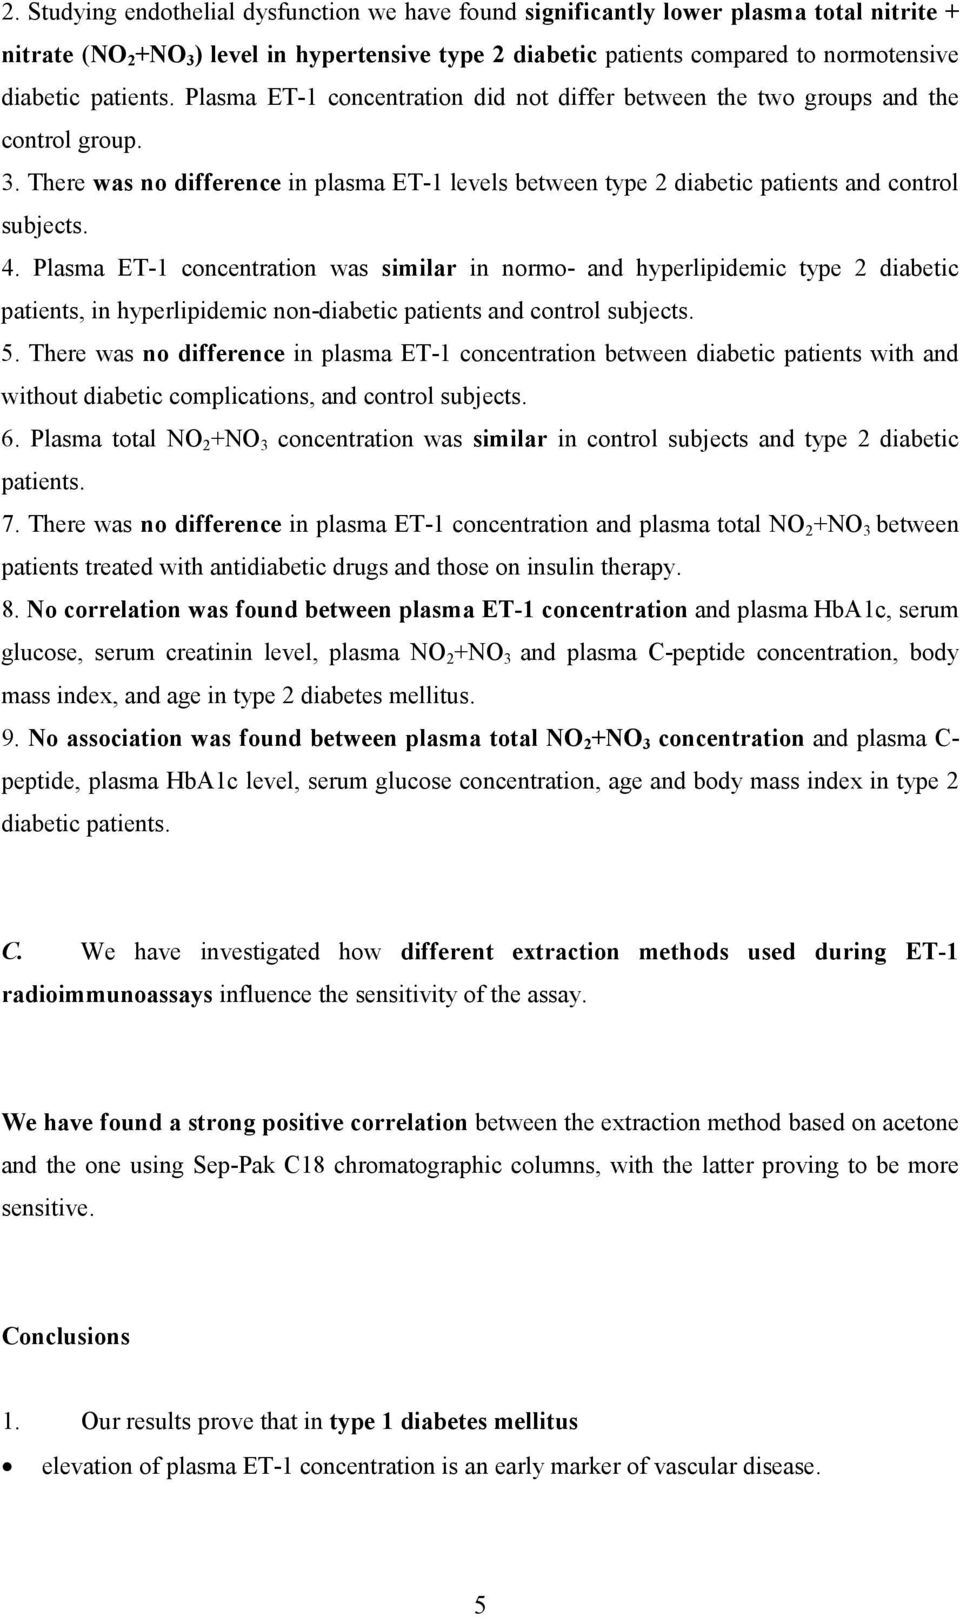 4. Plasma ET-1 concentration was similar in normo- and hyperlipidemic type 2 diabetic patients, in hyperlipidemic non-diabetic patients and control subjects. 5.